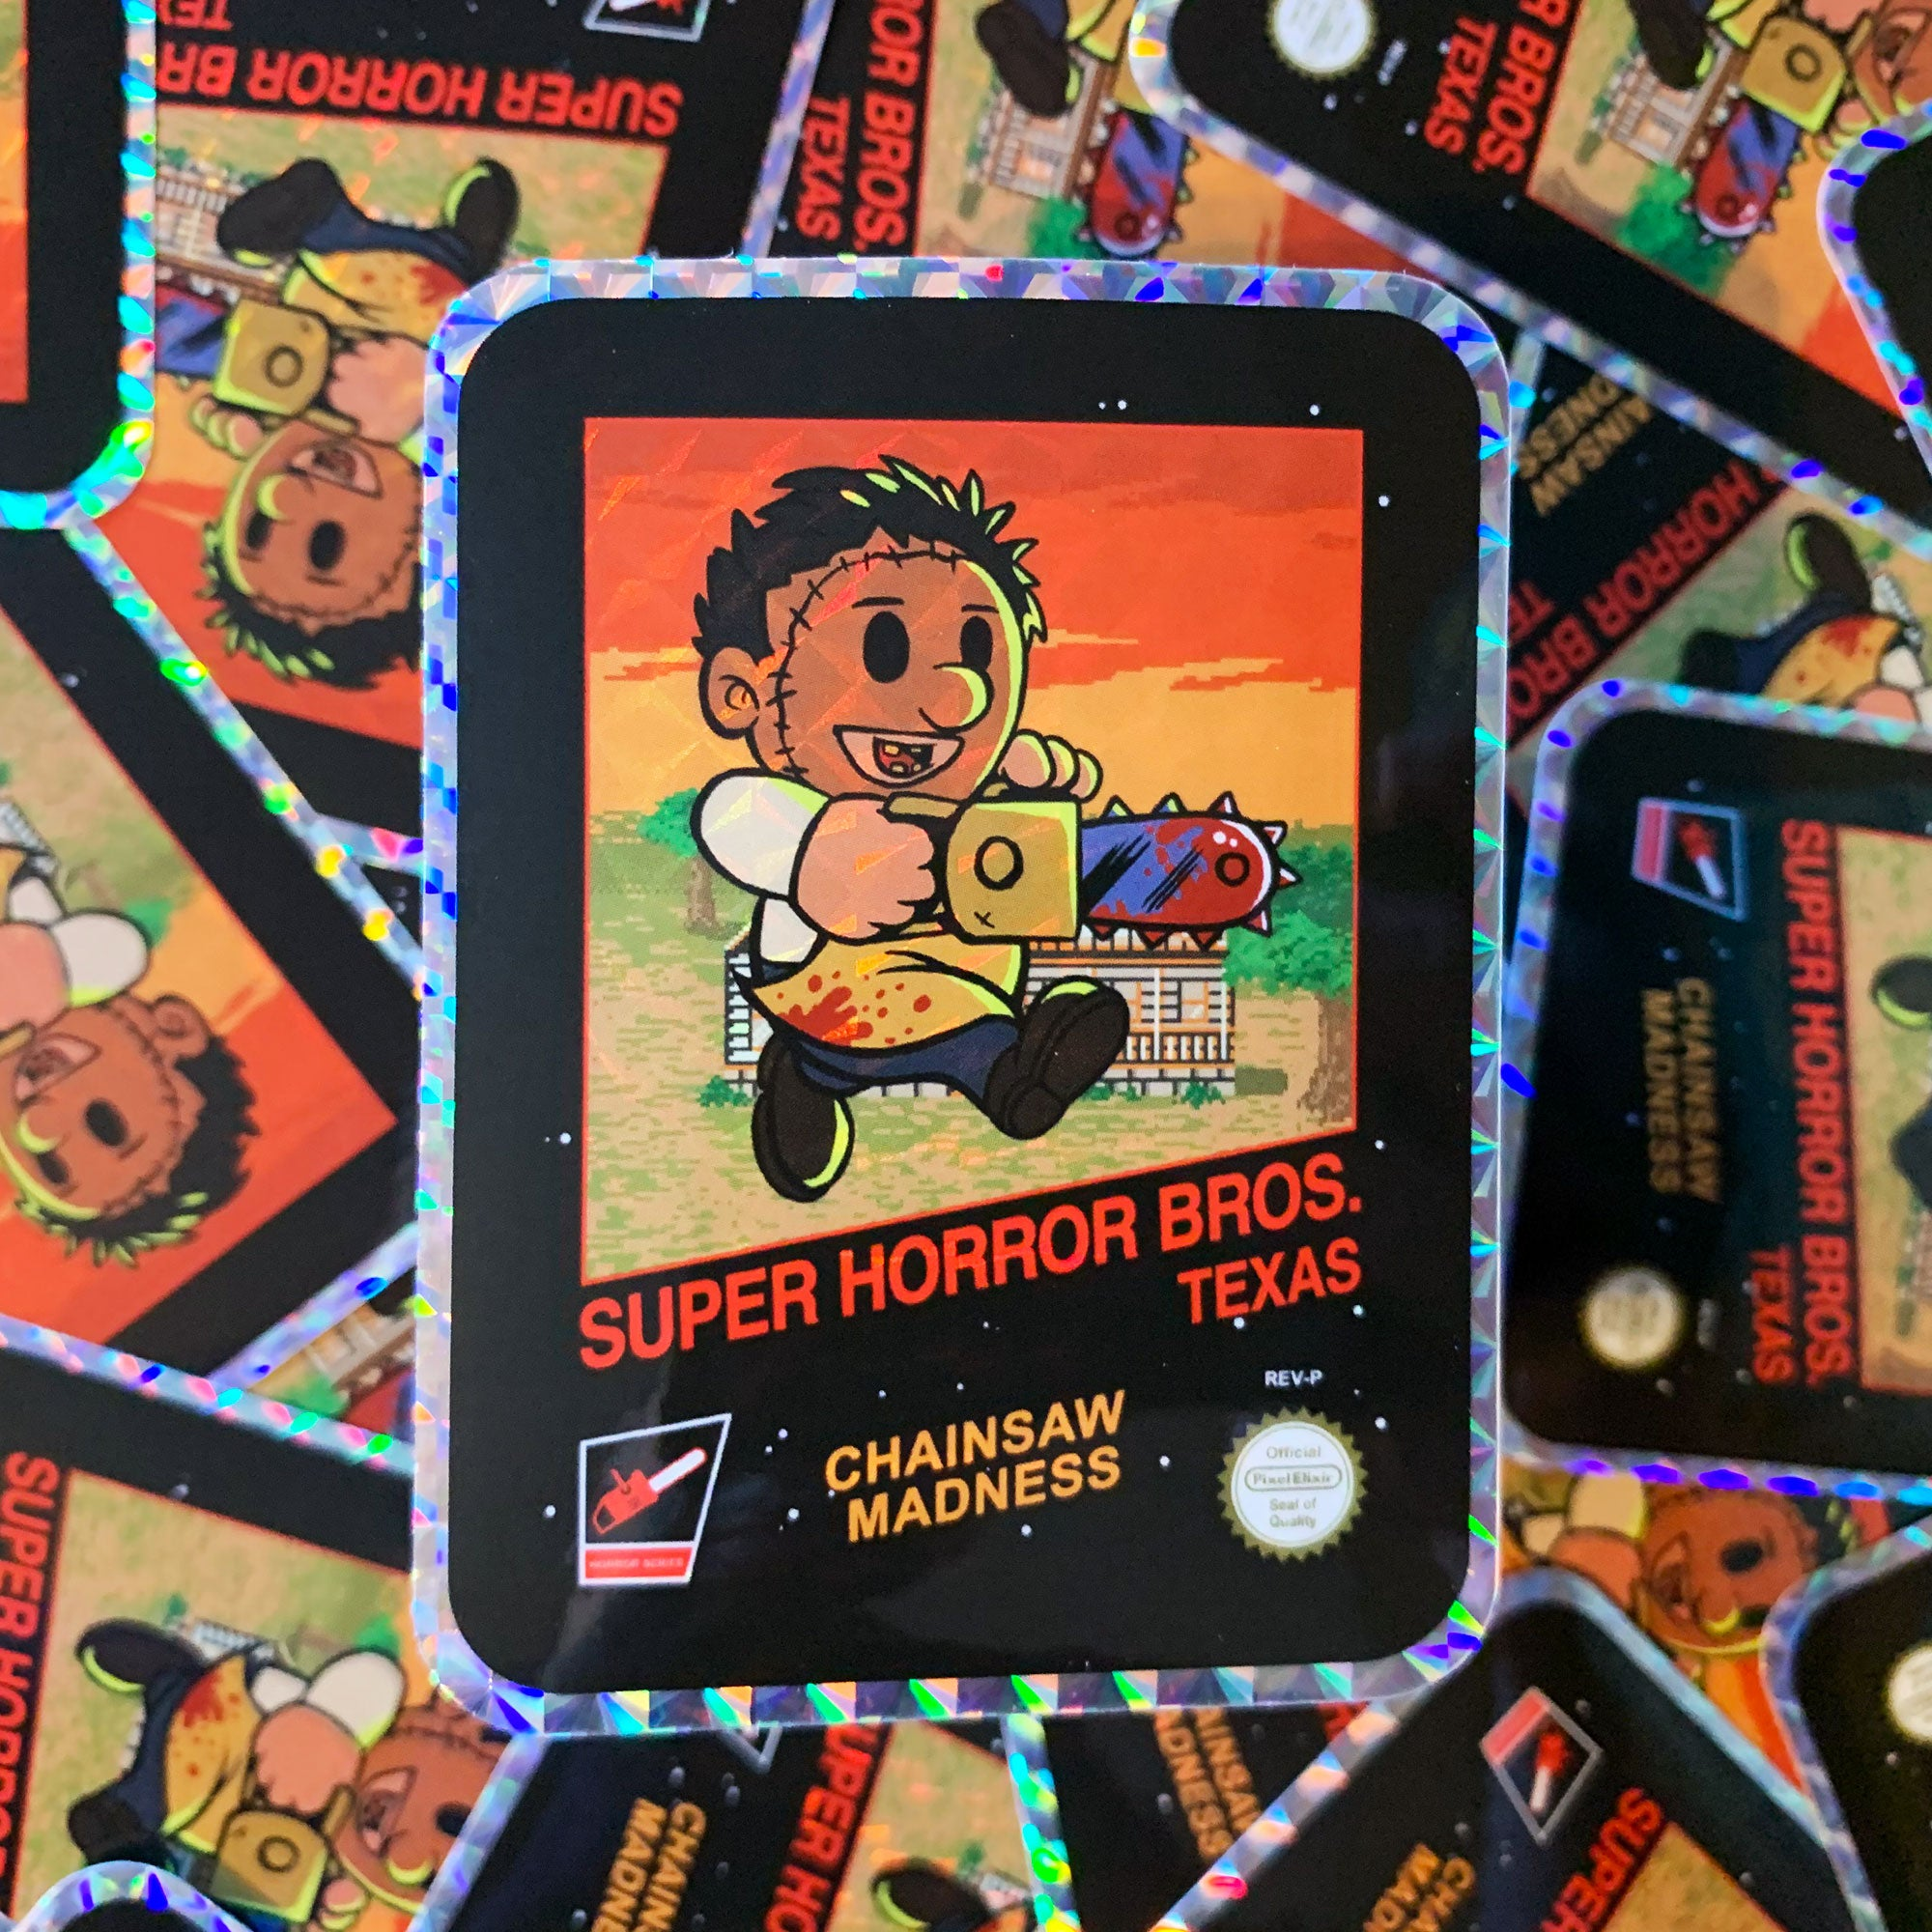 Super Horror Bros. Texas Hologram Sticker